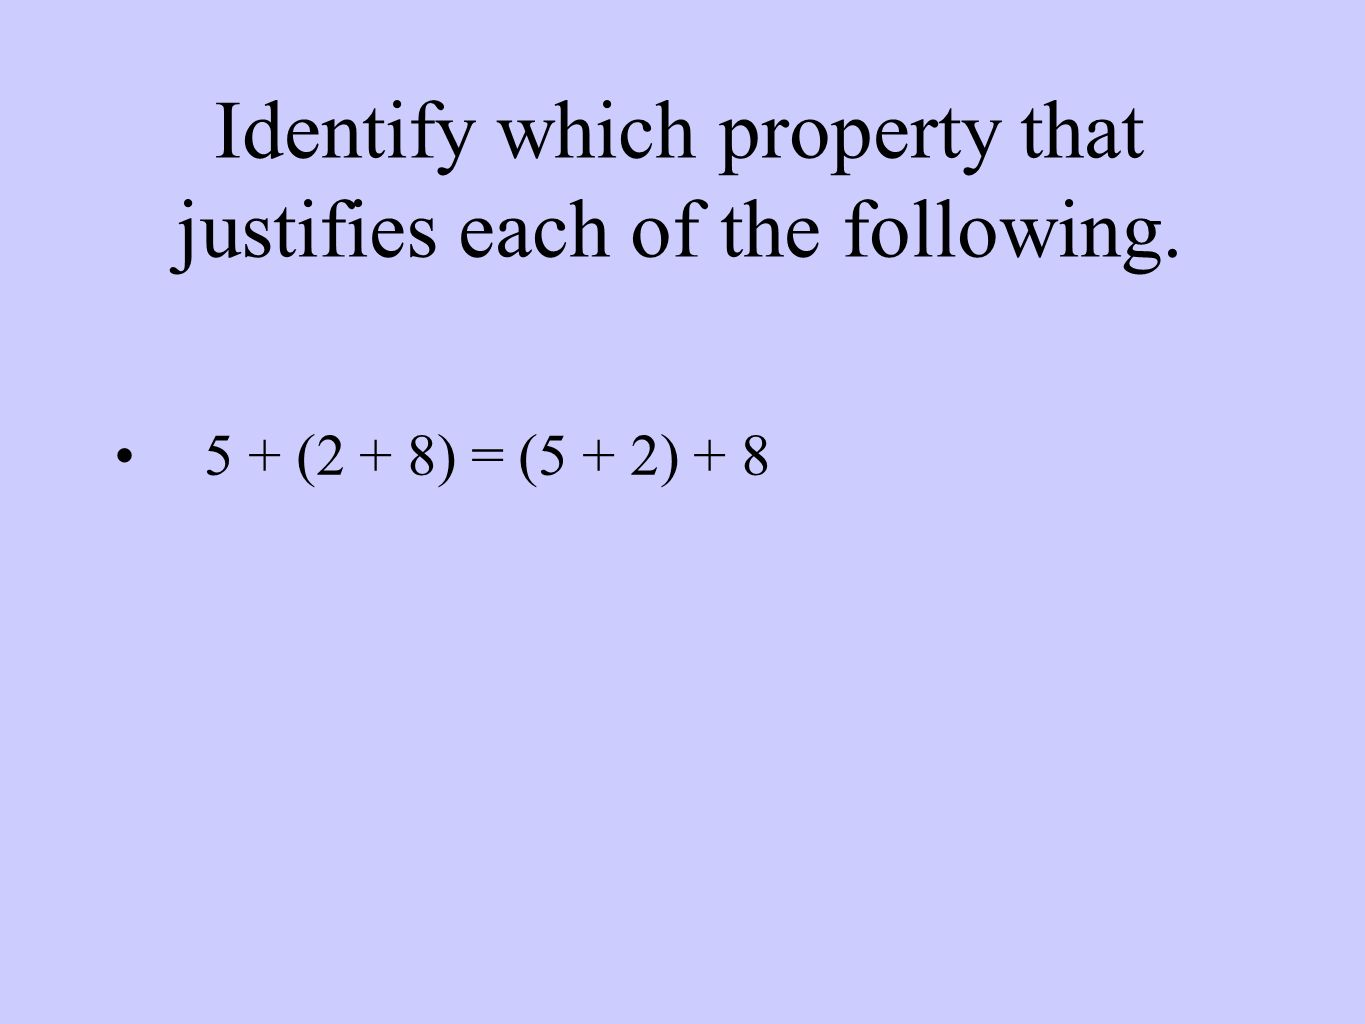 Identify which property that justifies each of the following. 5 + (2 + 8) = (5 + 2) + 8